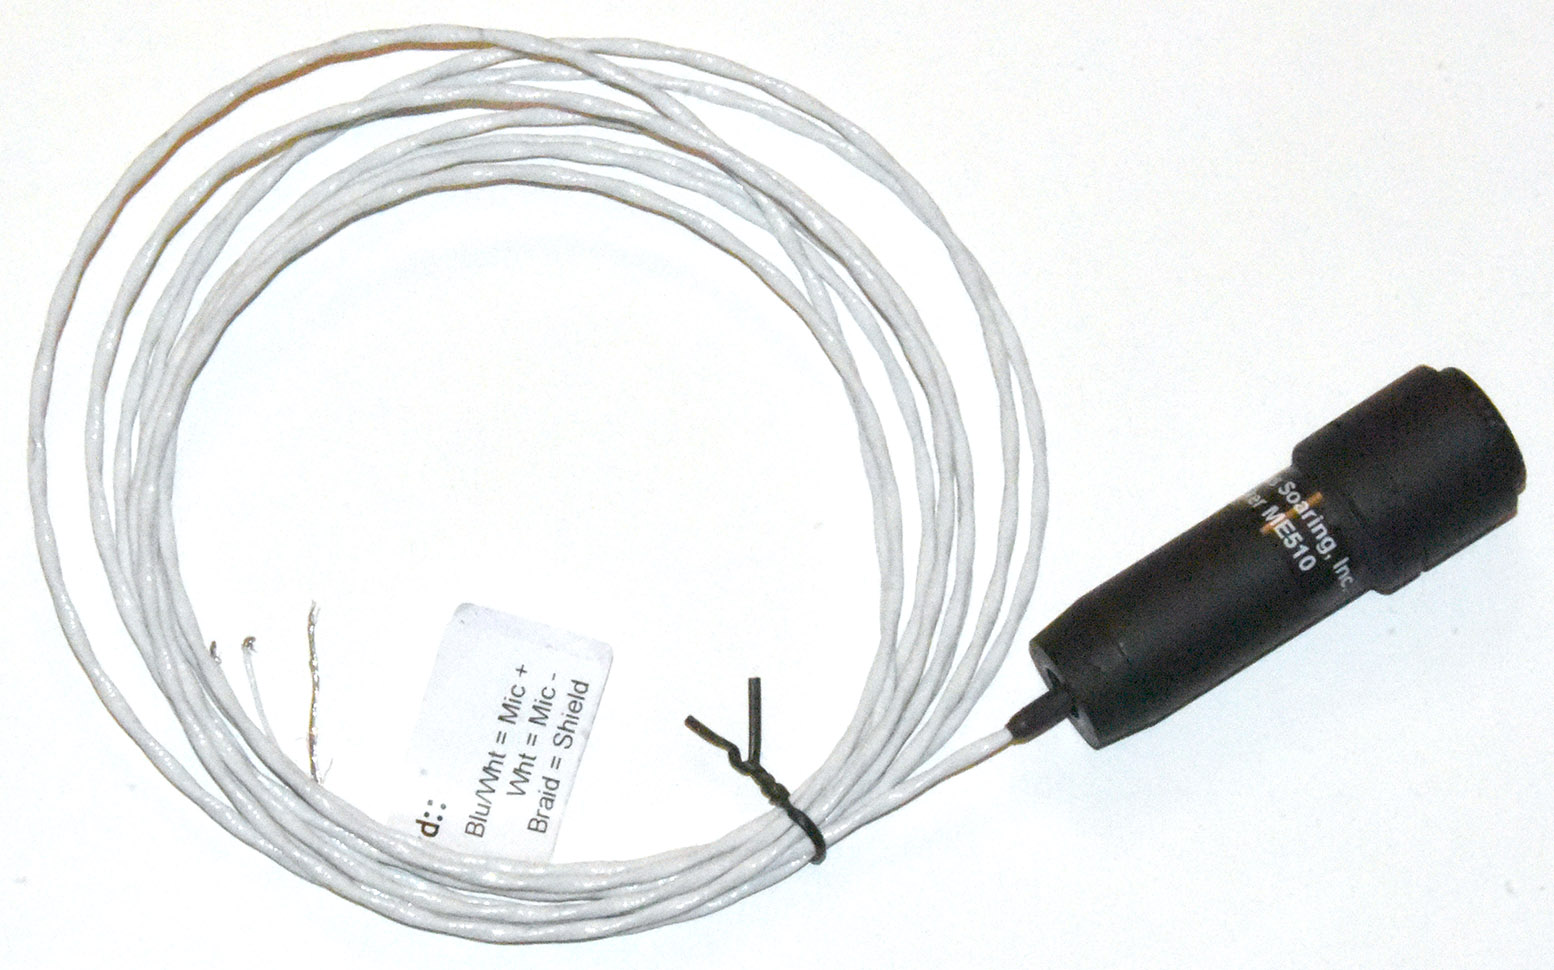 Cumulus Soaring Inc Peiker Acustic Wiring Reviews Online Shopping On Electret Microphone Me510 14